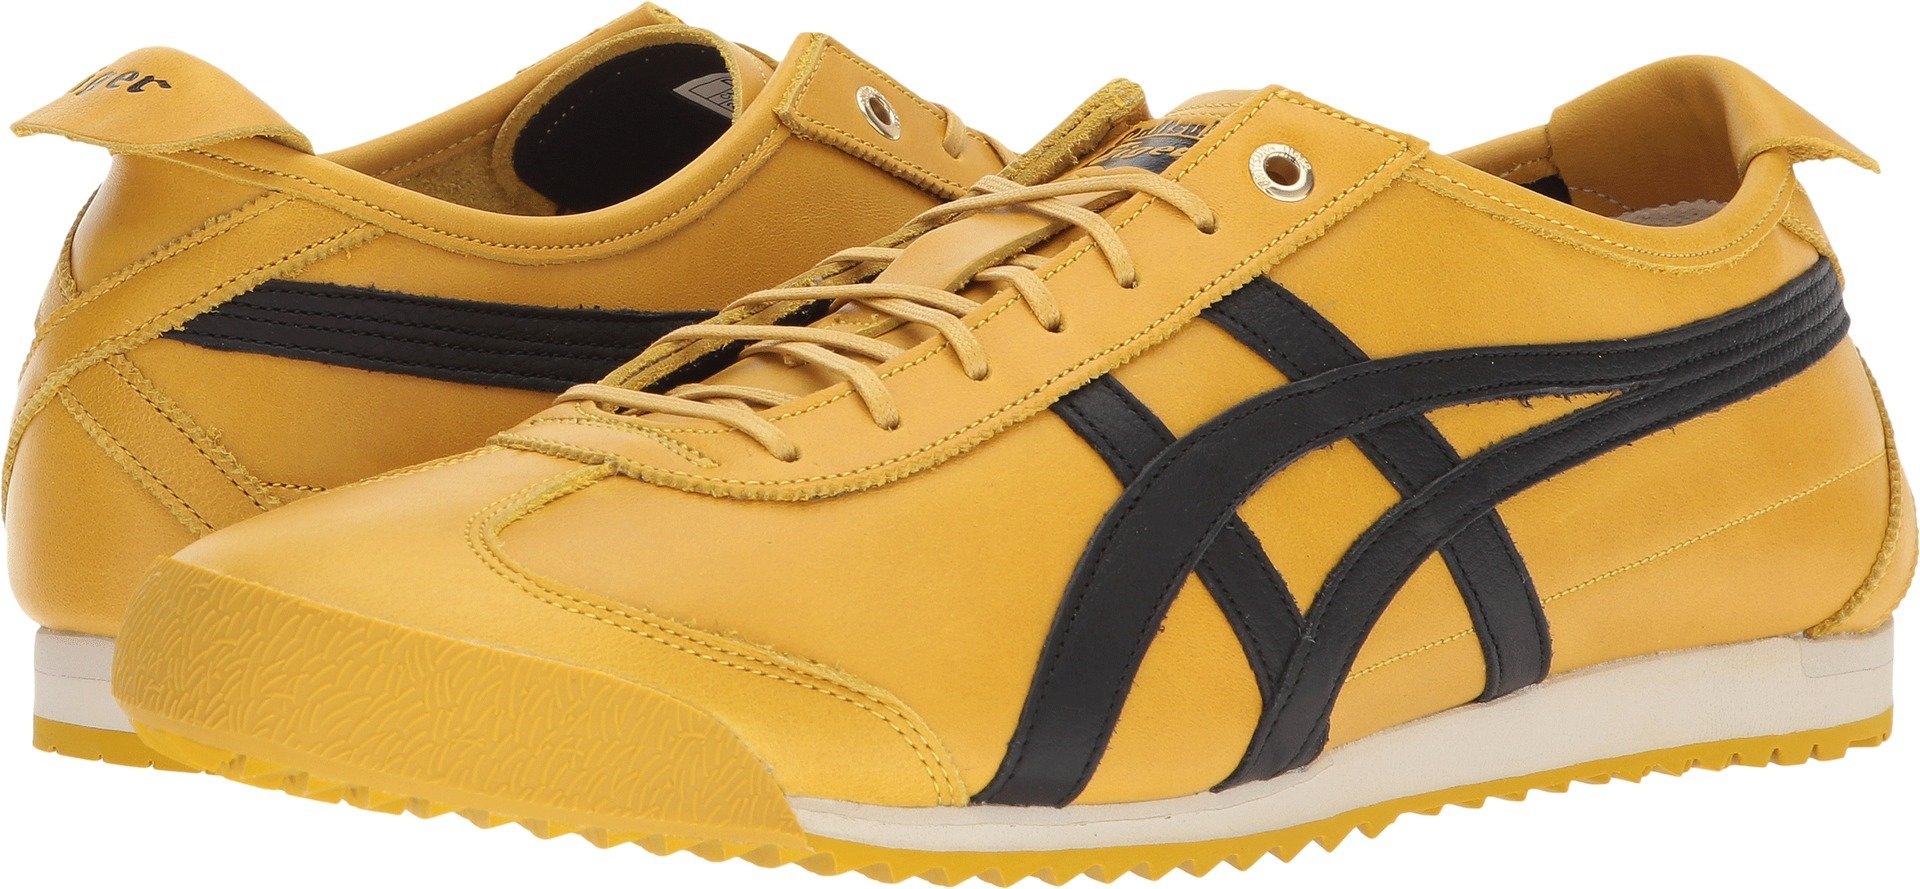 separation shoes 97908 b03f7 Galleon - Onitsuka Tiger By Asics Unisex Mexico 66 SD Tai ...